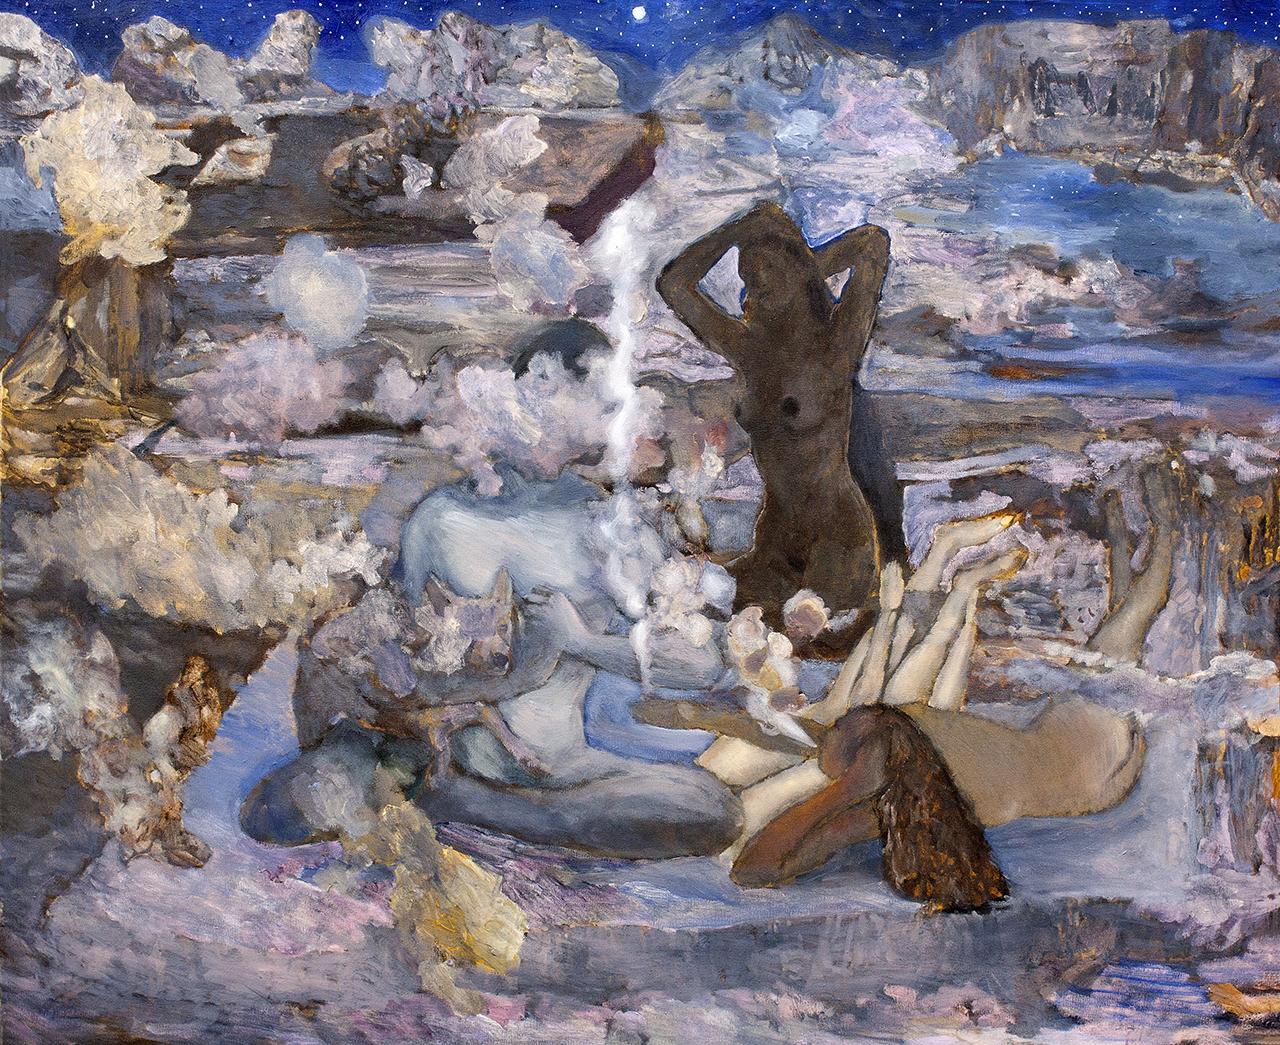 <!--:en--> On Terraces of Jerusalem Seherezada is telling a story, 2014, oil on canvas, 100x120cm<!--:--><!--:hr--> Na terasama Jeruzalema, Šeherezada priča priću, 2014., ulje na platnu, 100x120cm<!--:-->